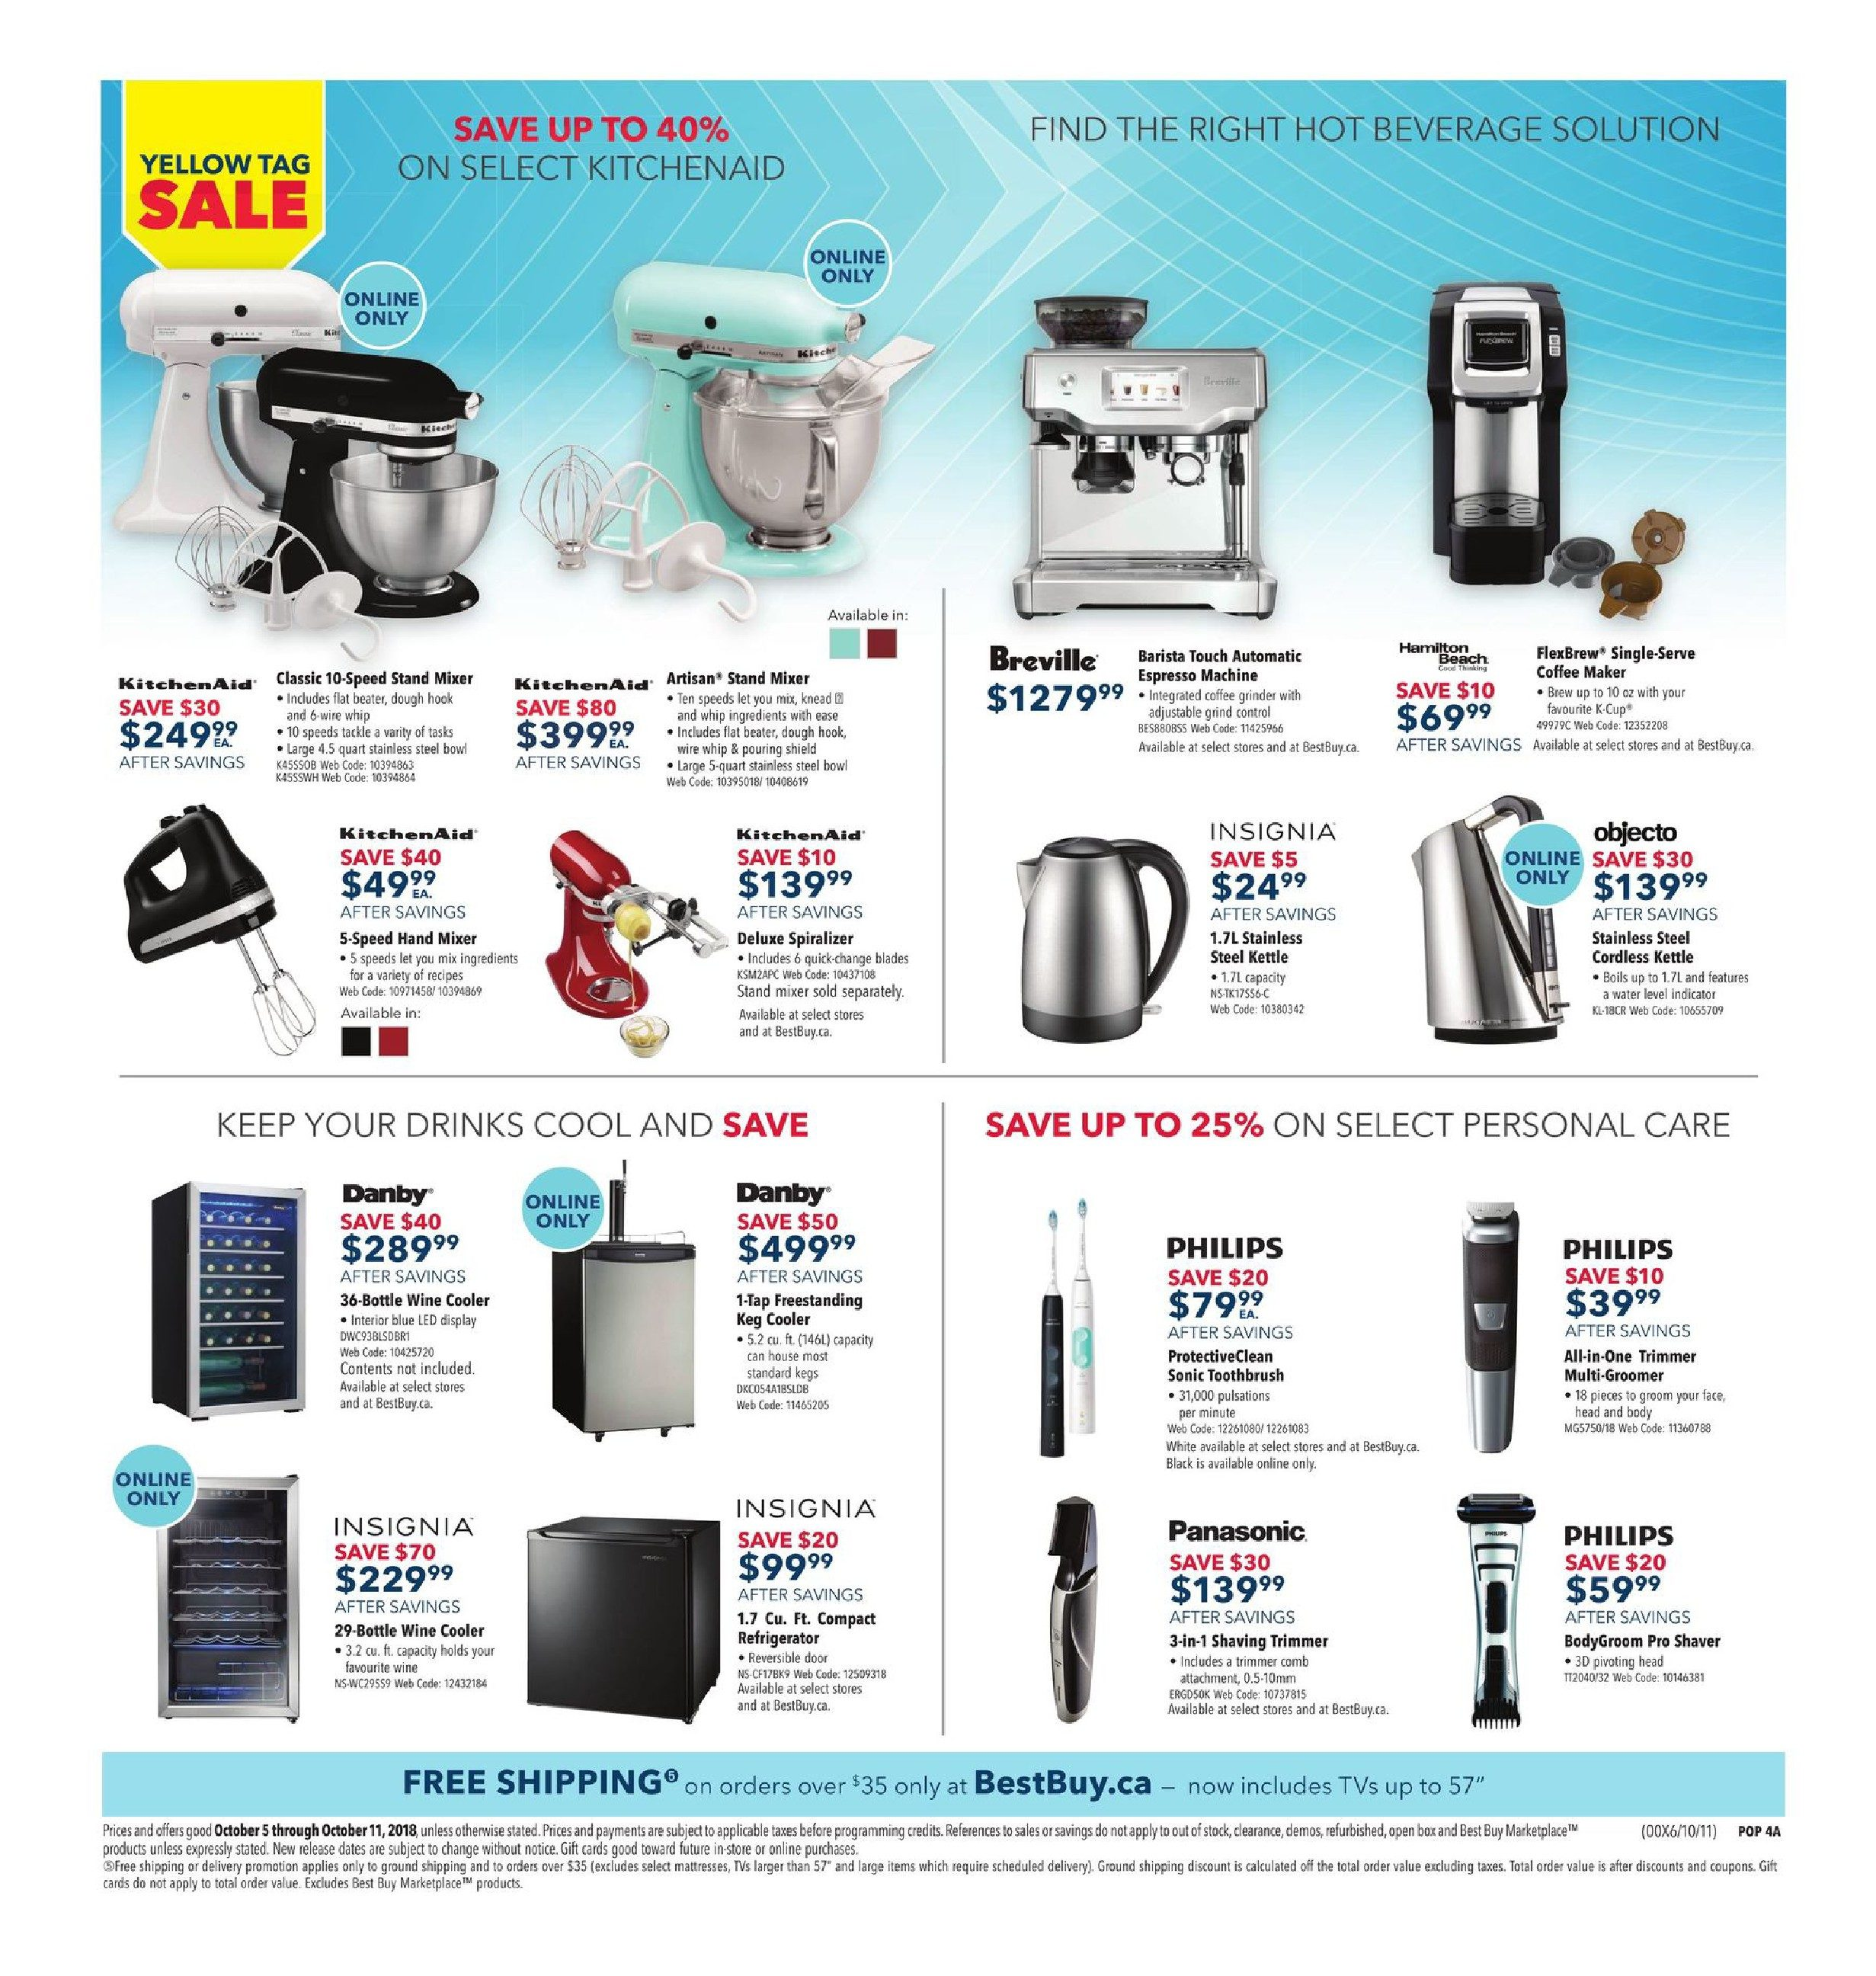 Best Buy Weekly Flyer Yellow Tag Sale Oct 5 11 Wifienabled Rgb Led Strip Controller Stavros39 Stuff